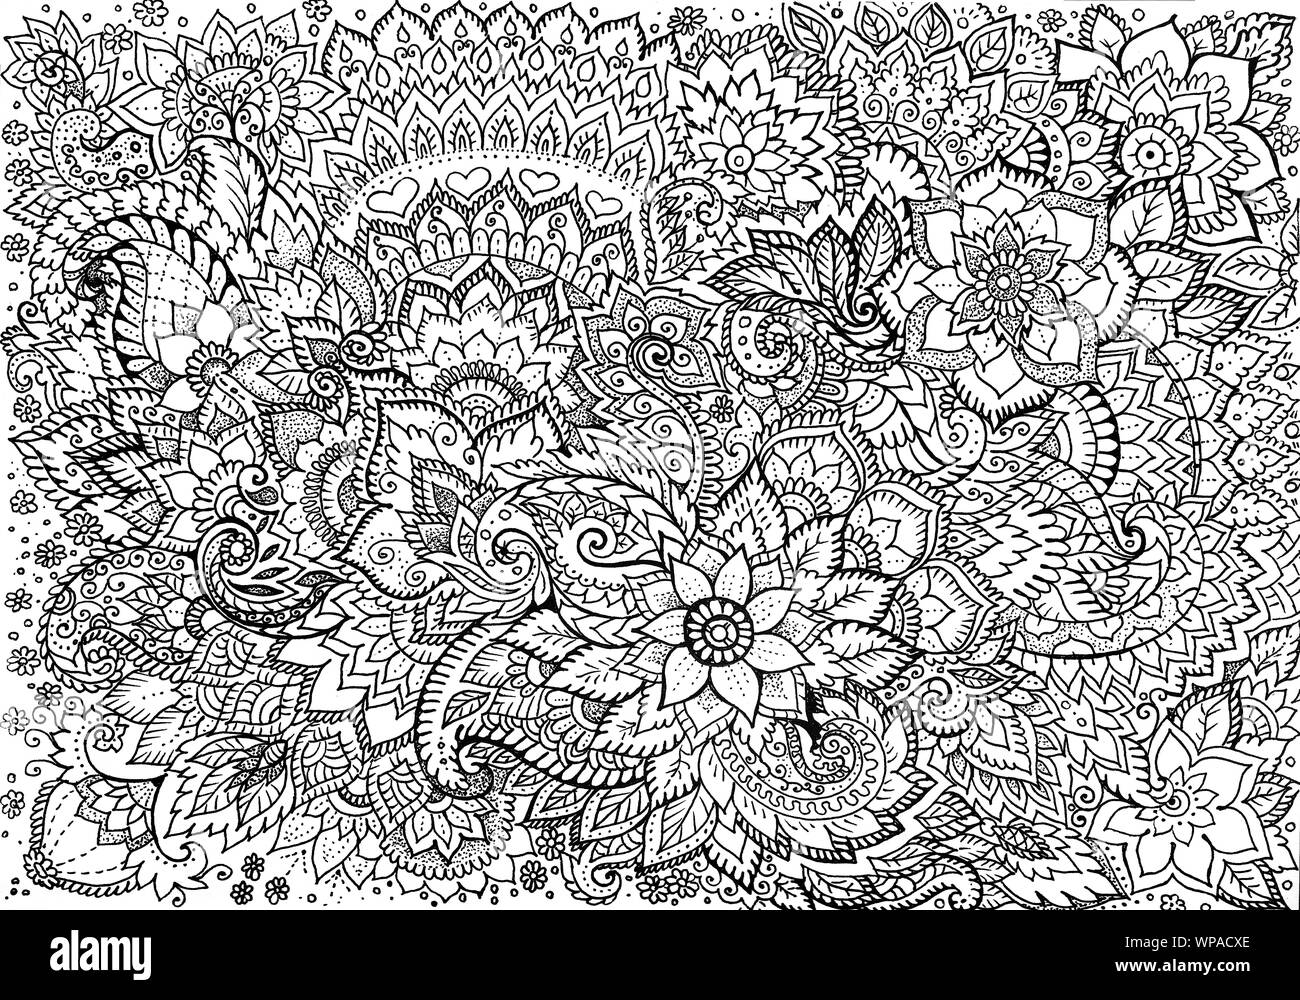 Drawing Background With Beautiful Floral Patterns Stock Photo